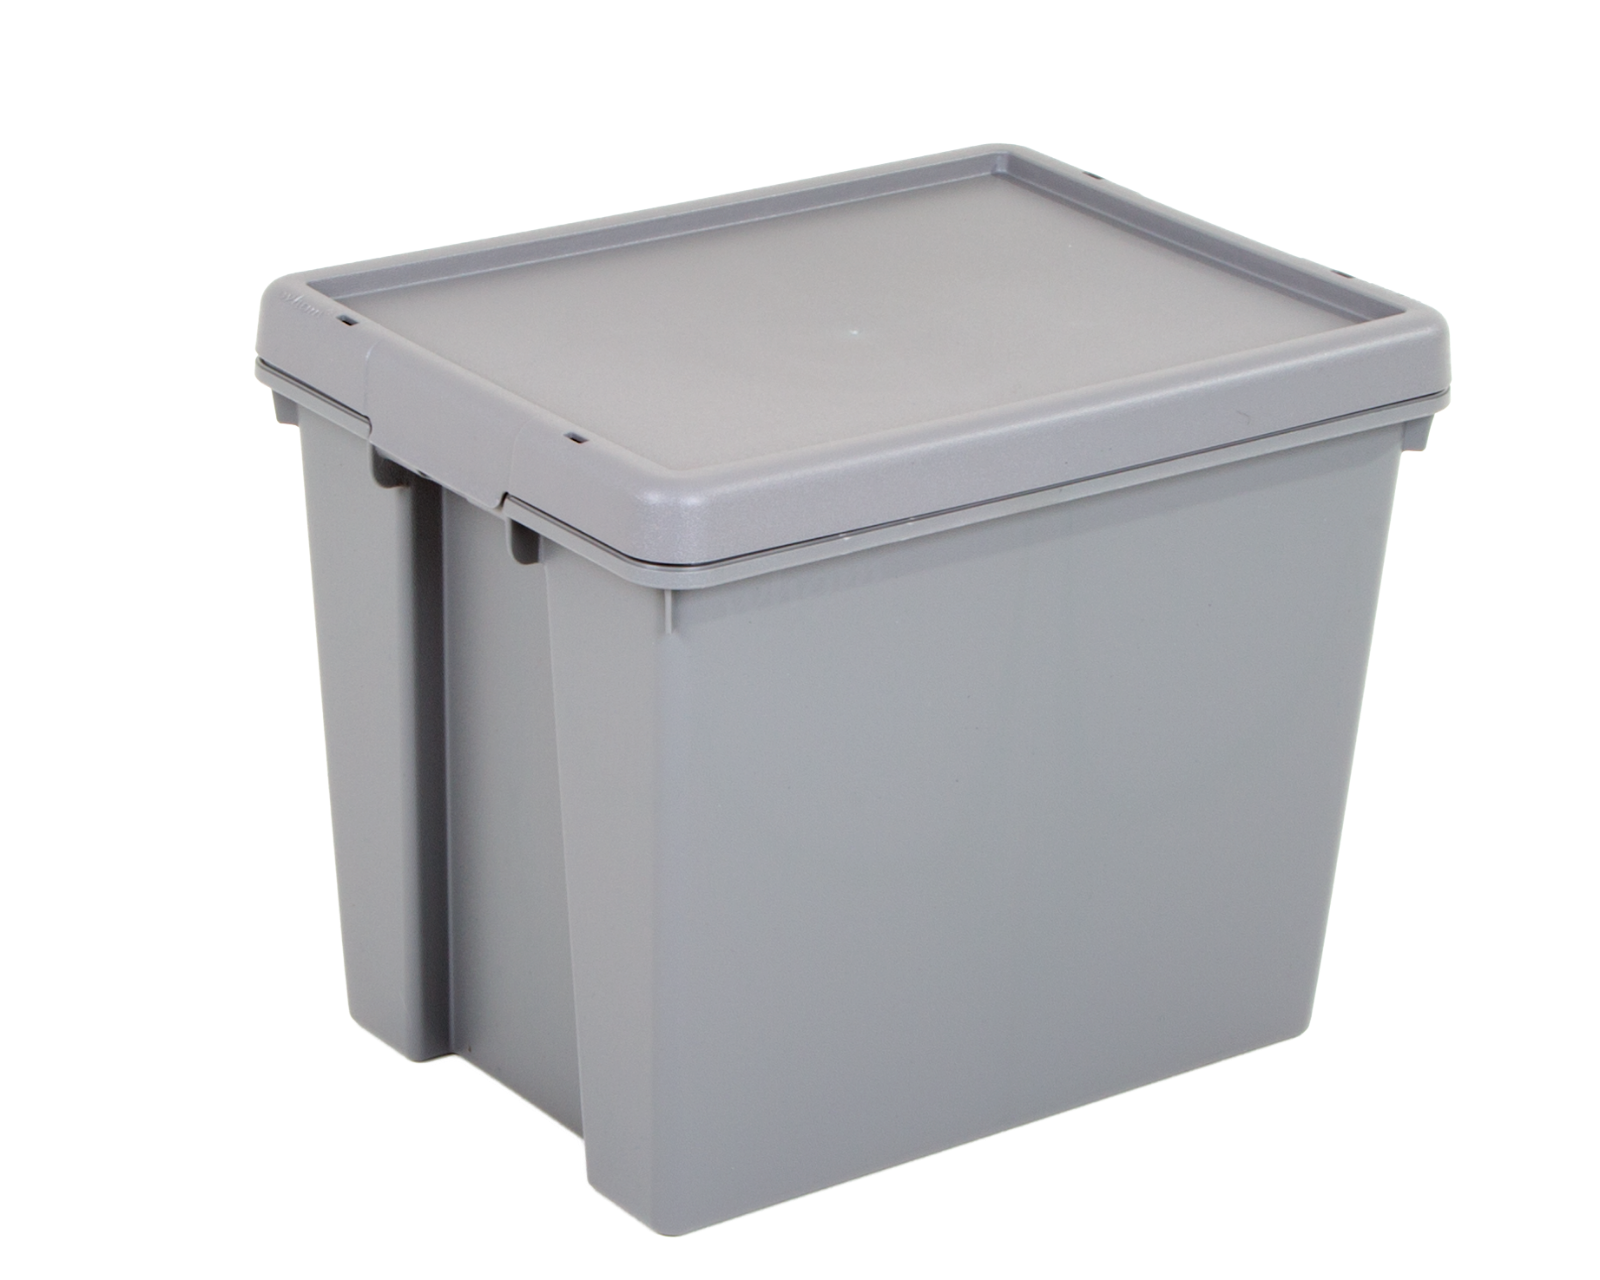 Wham Bam Bam Bam Heavy Duty Plastic Storage Box Boxes With Lids - Upcycled Plastic d89ff3